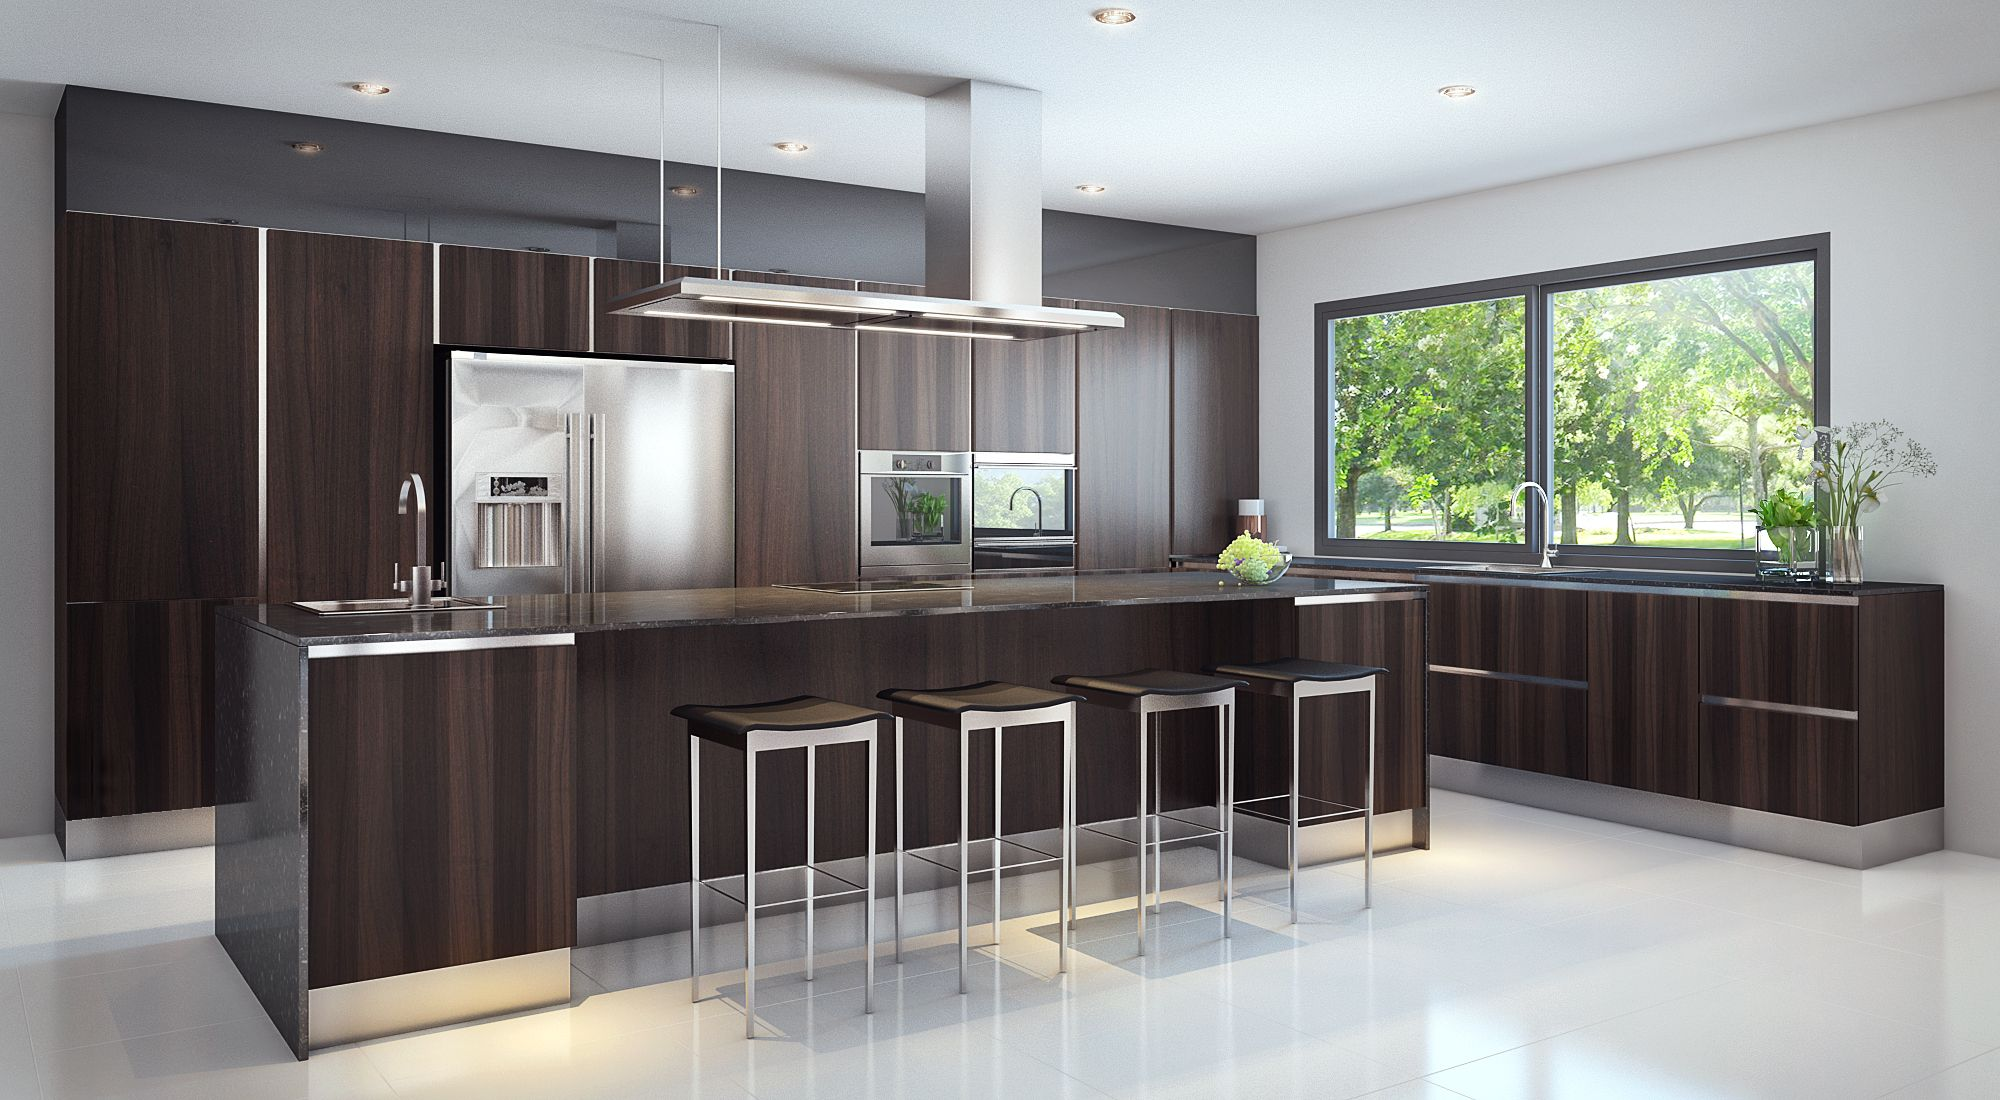 Simple dry kitchen design - Mobiletto Mito Dry Kitchen For A Landed Property